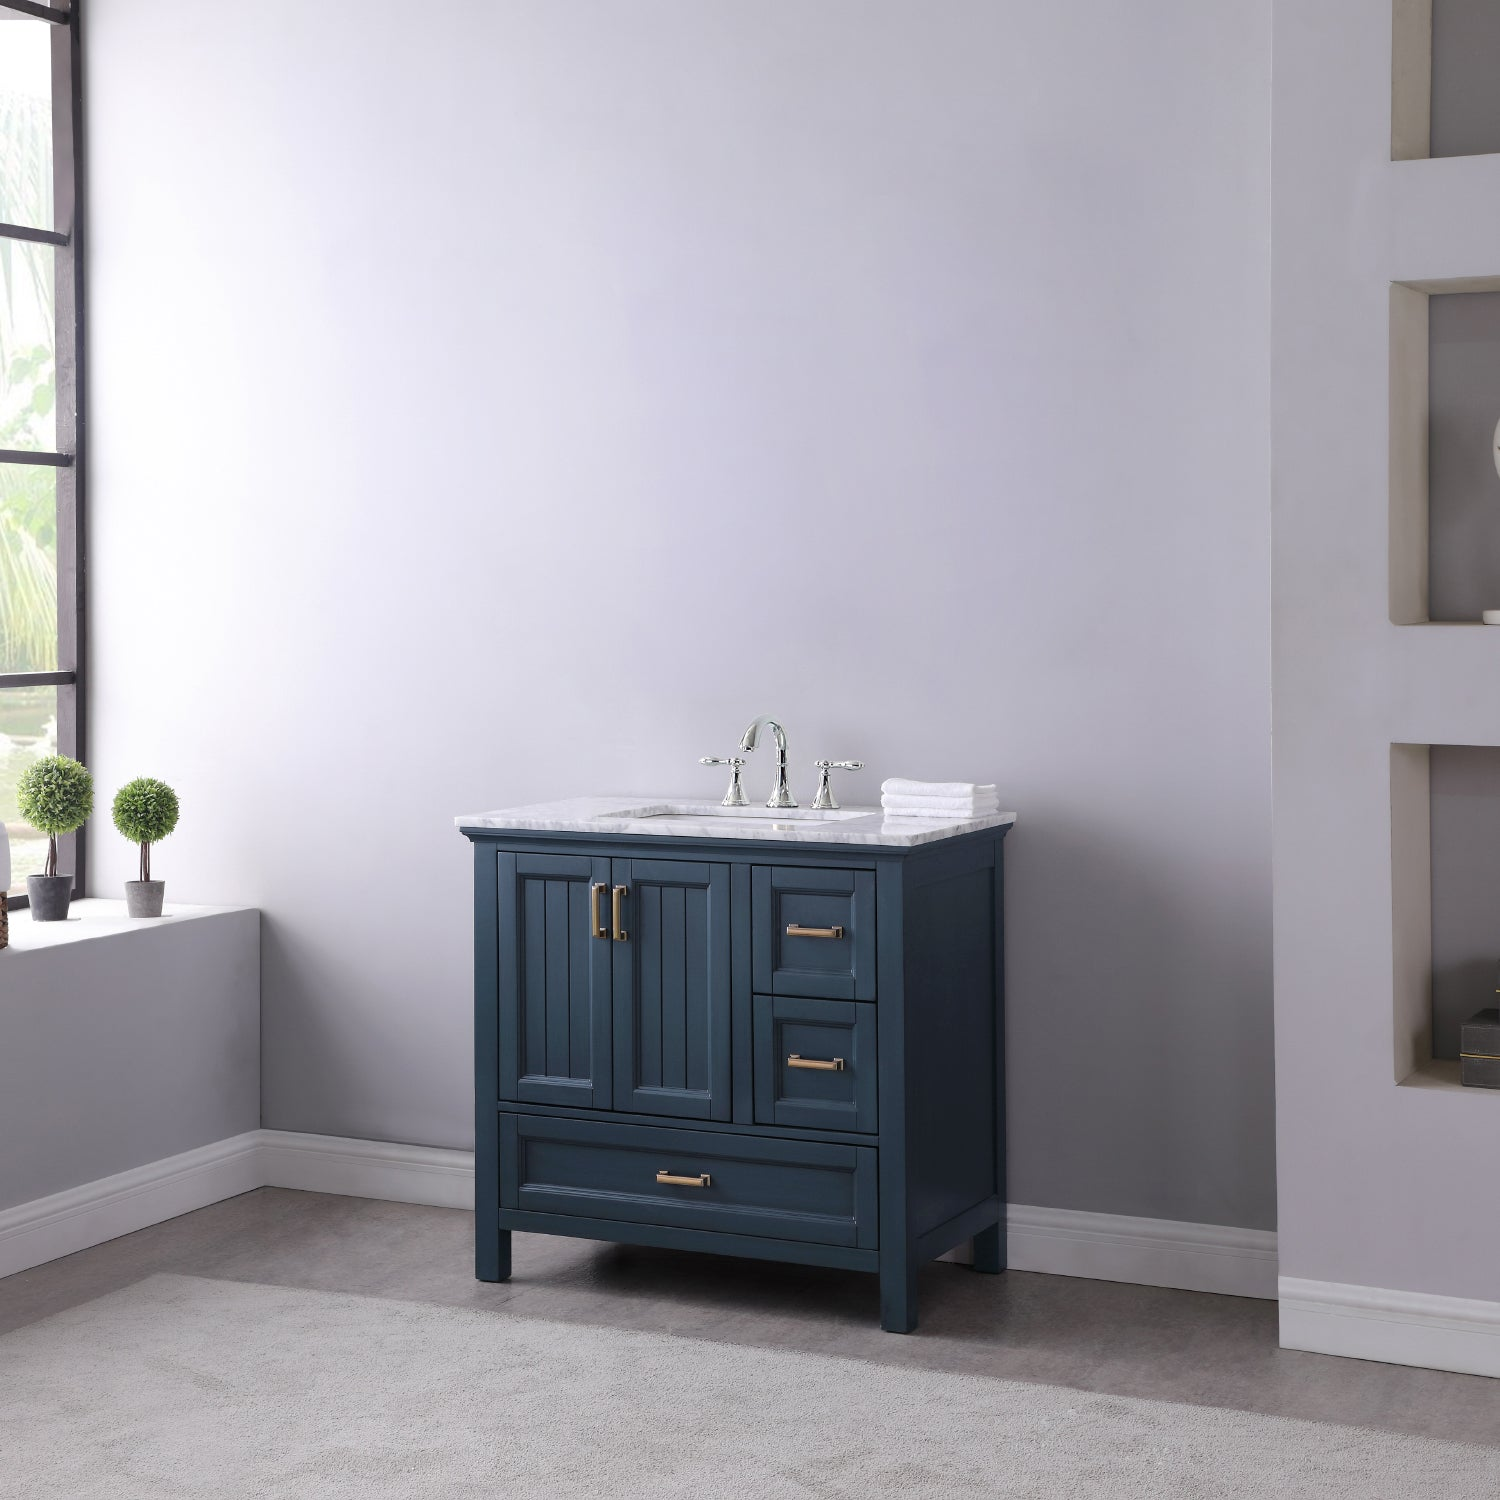 "Isla 36"" Single Bathroom Vanity Set in Classic Blue and Carrara White Marble Countertop without Mirror"